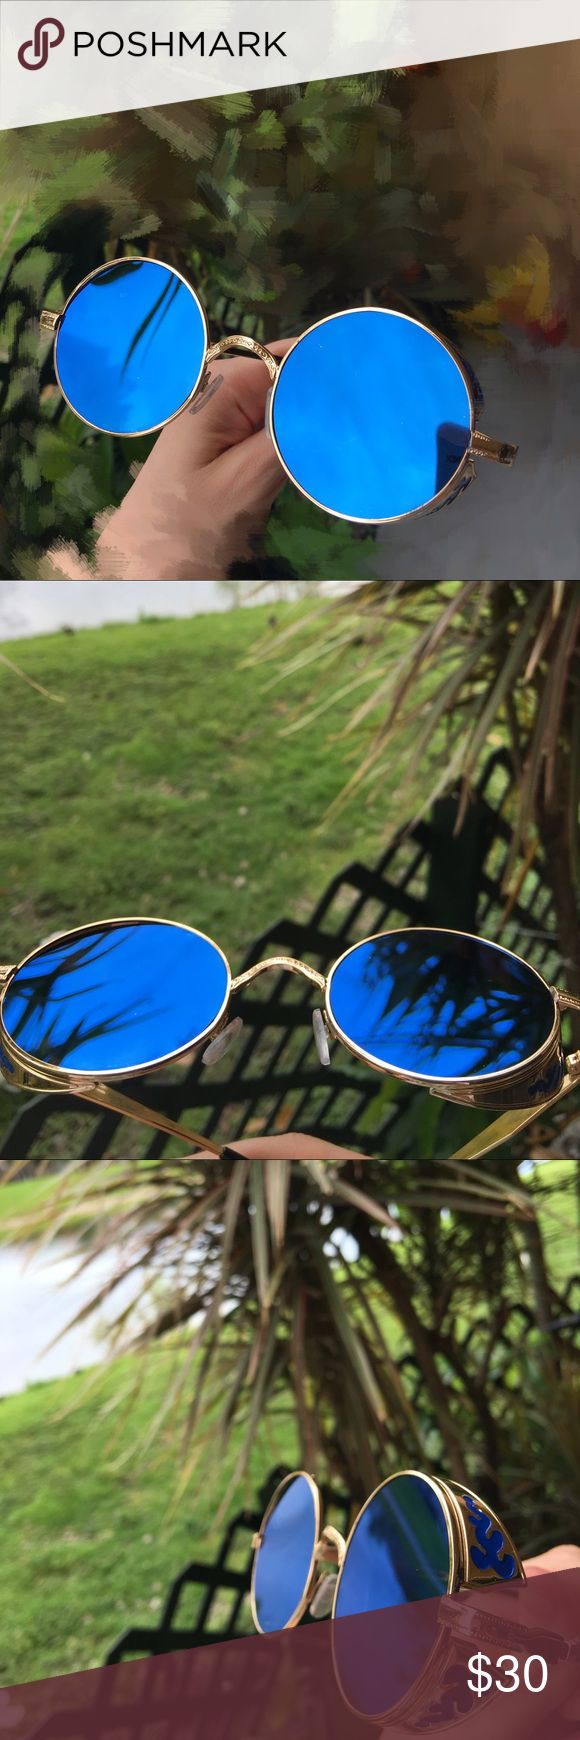 Beautiful mirror blue round sunglasses #Sunnies Mirror blue sunglasses. Please let me know if any questions Accessories Sunglasses